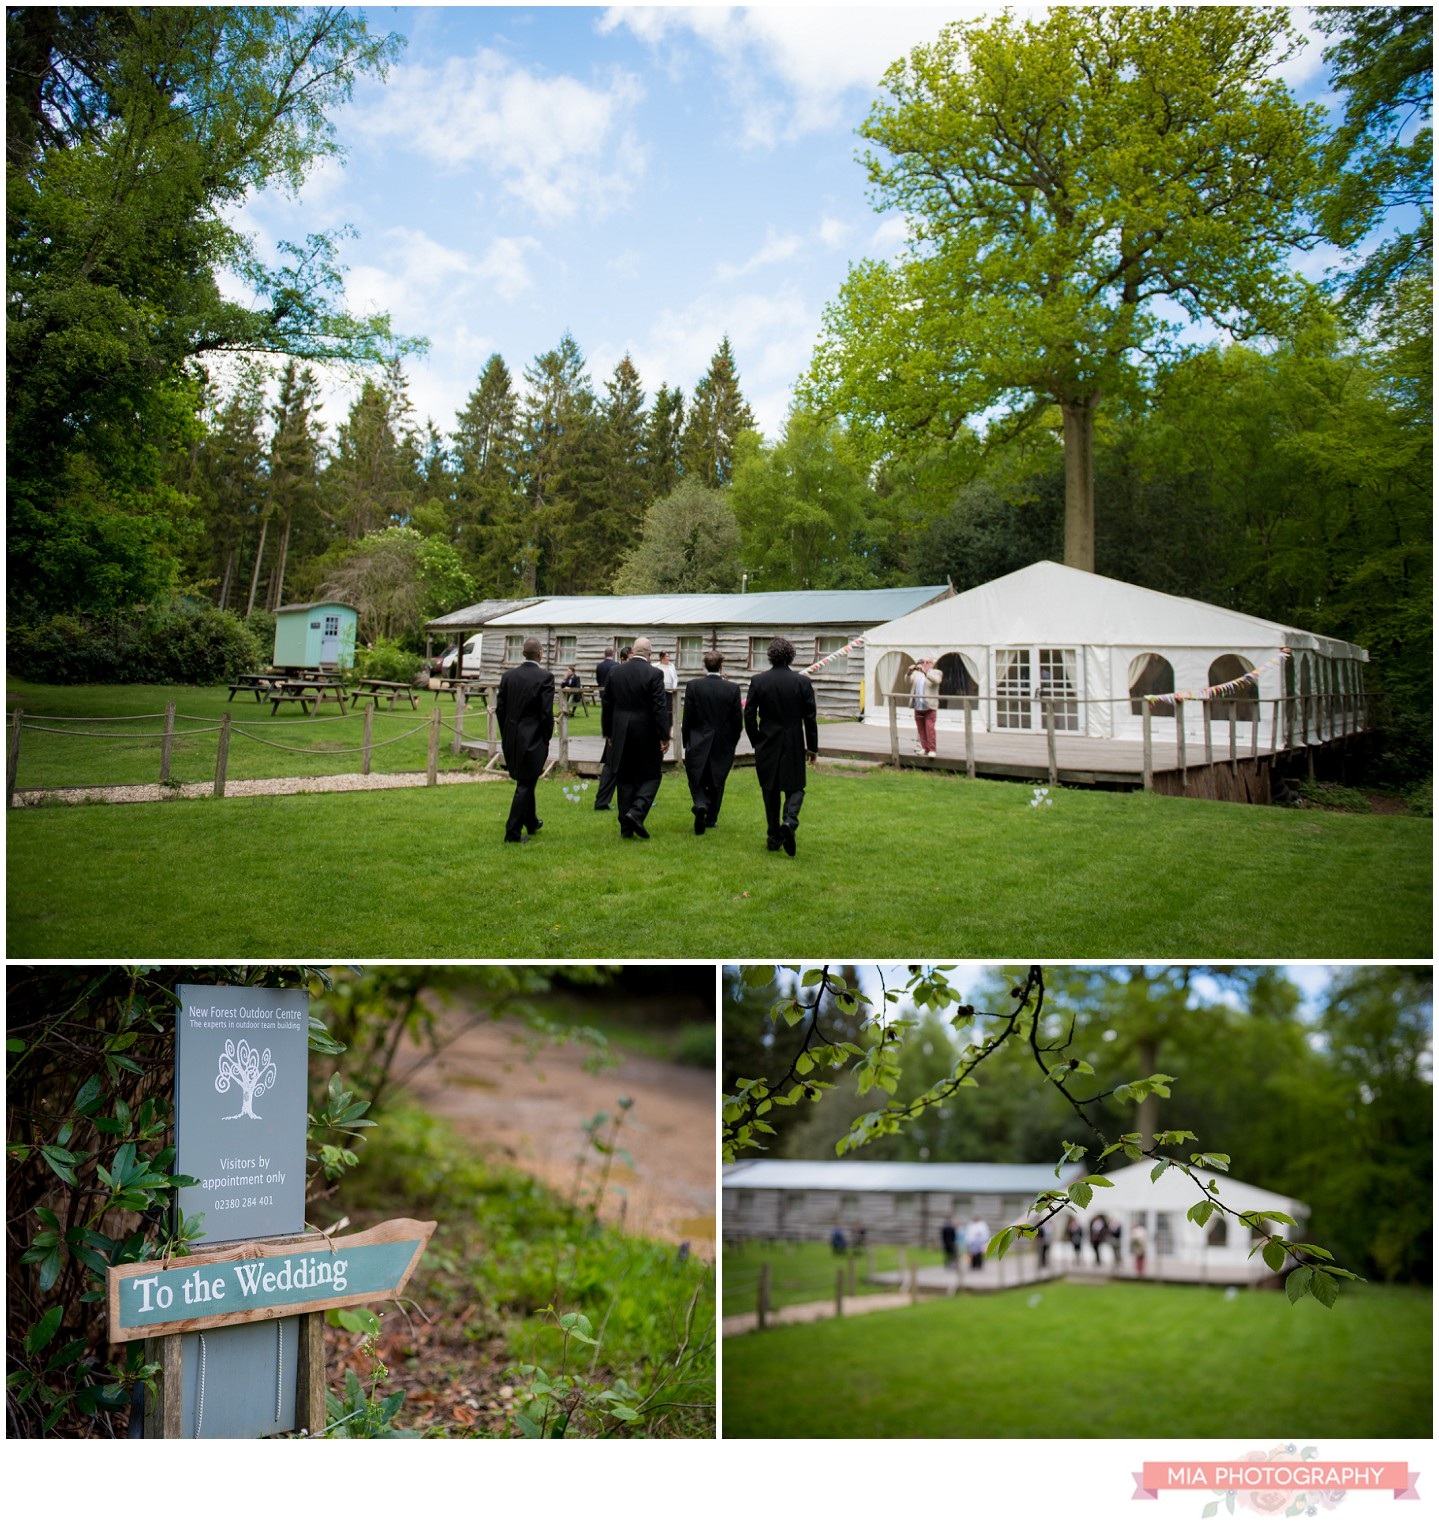 Wedding in the Wood, new forest